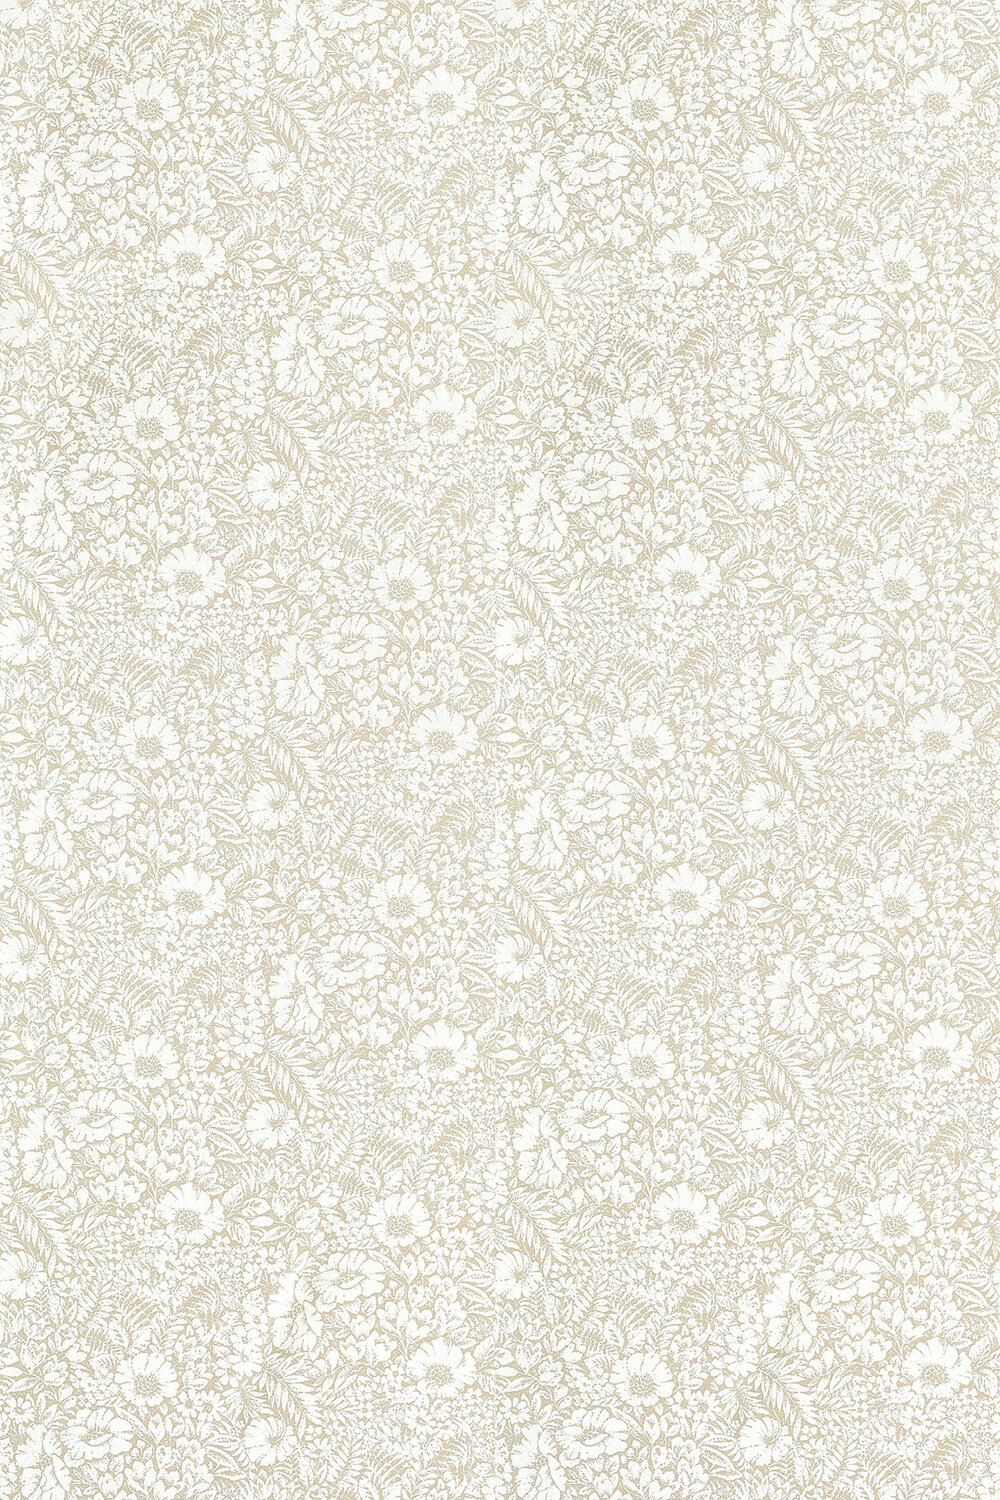 Meadow Fields Fabric - Linen - by Sanderson